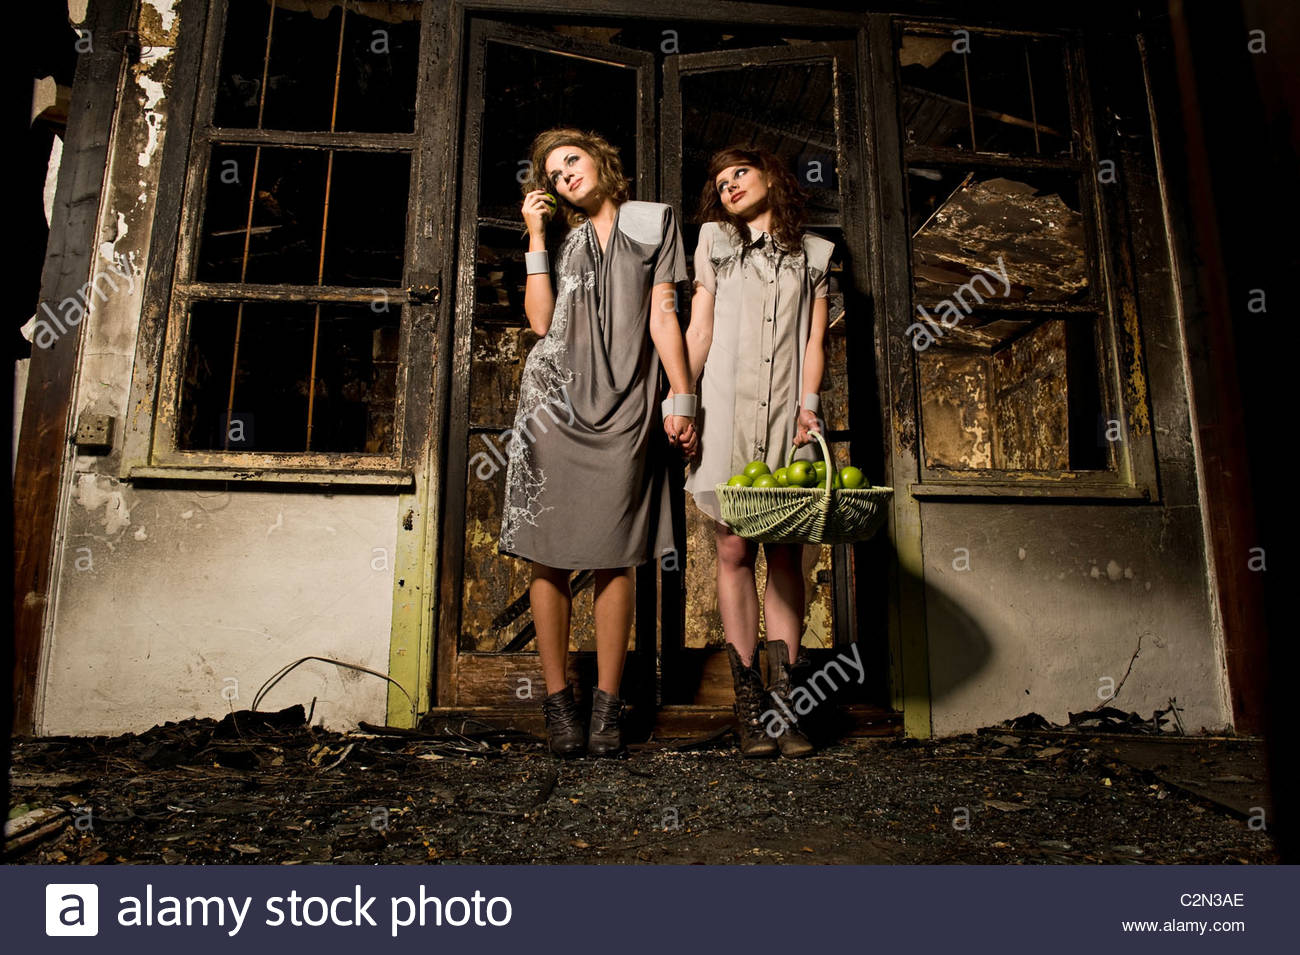 Caucasian Fashion Models in Burnt Building - Stock Image